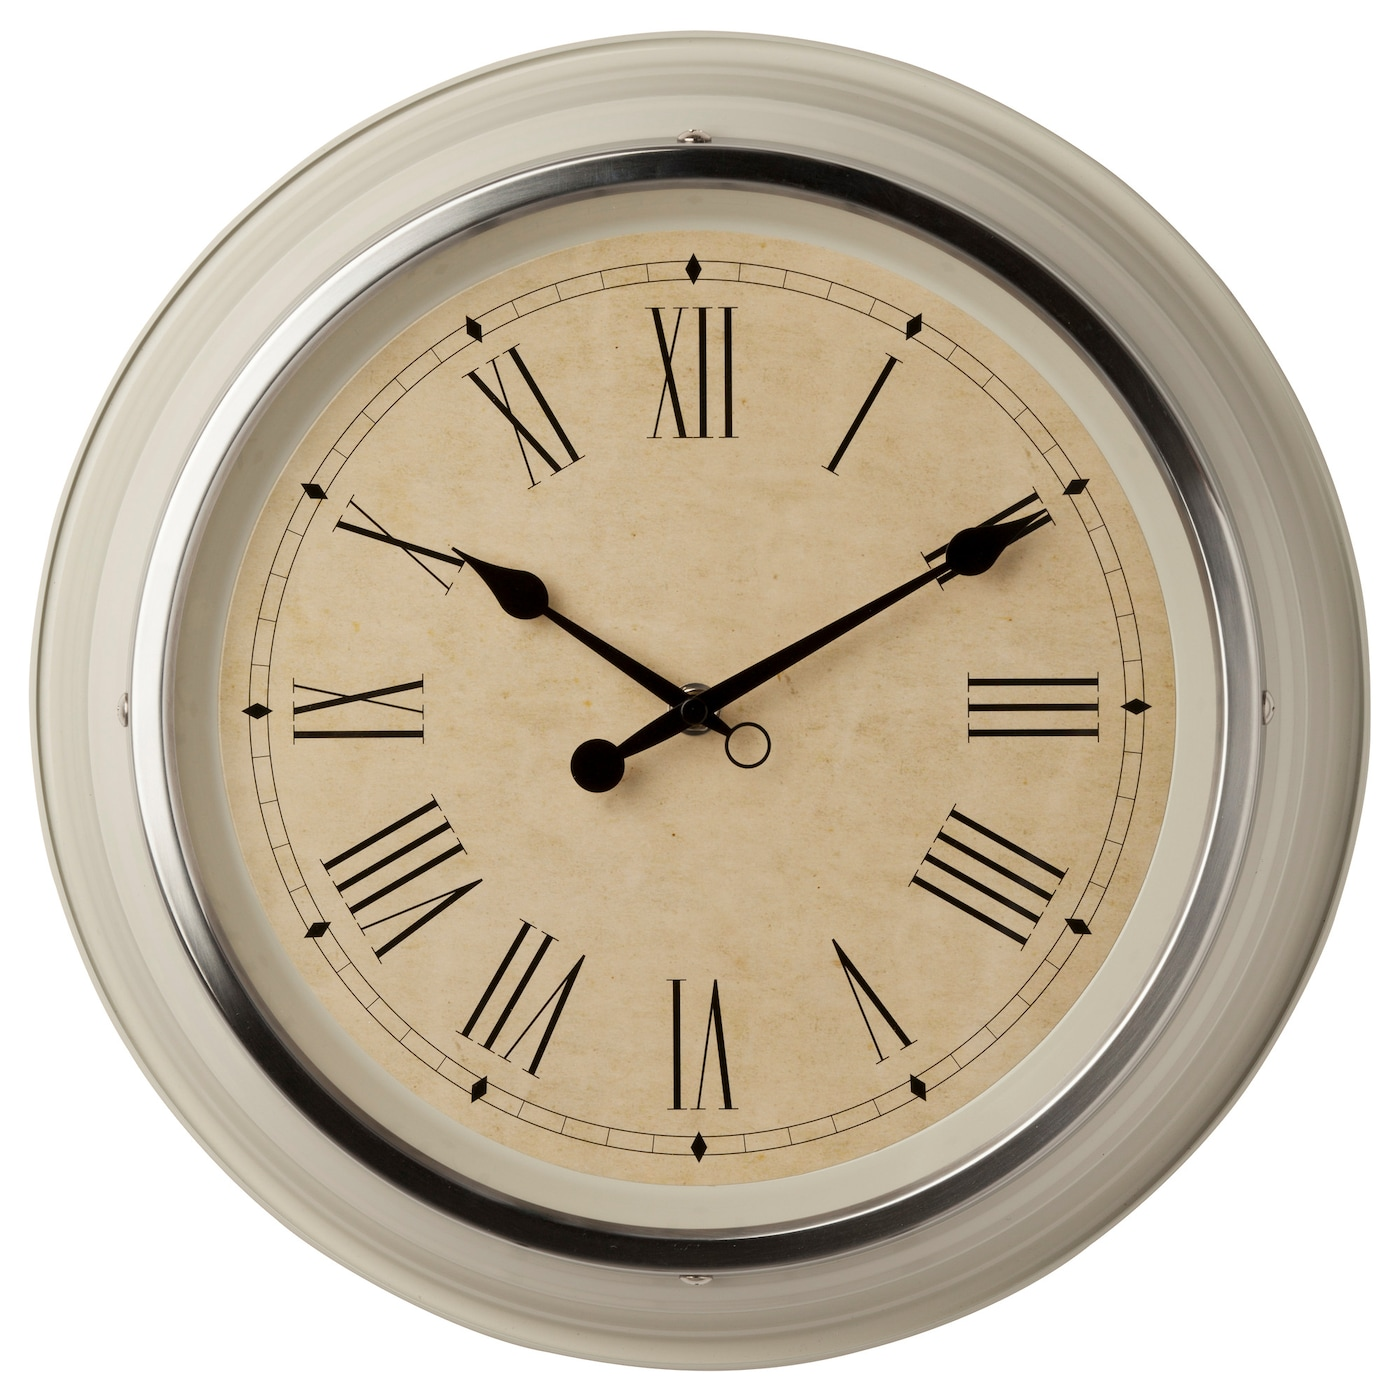 Clocks ikea dublin ireland ikea skovel wall clock highly accurate at keeping time as it is fitted with a quartz amipublicfo Gallery